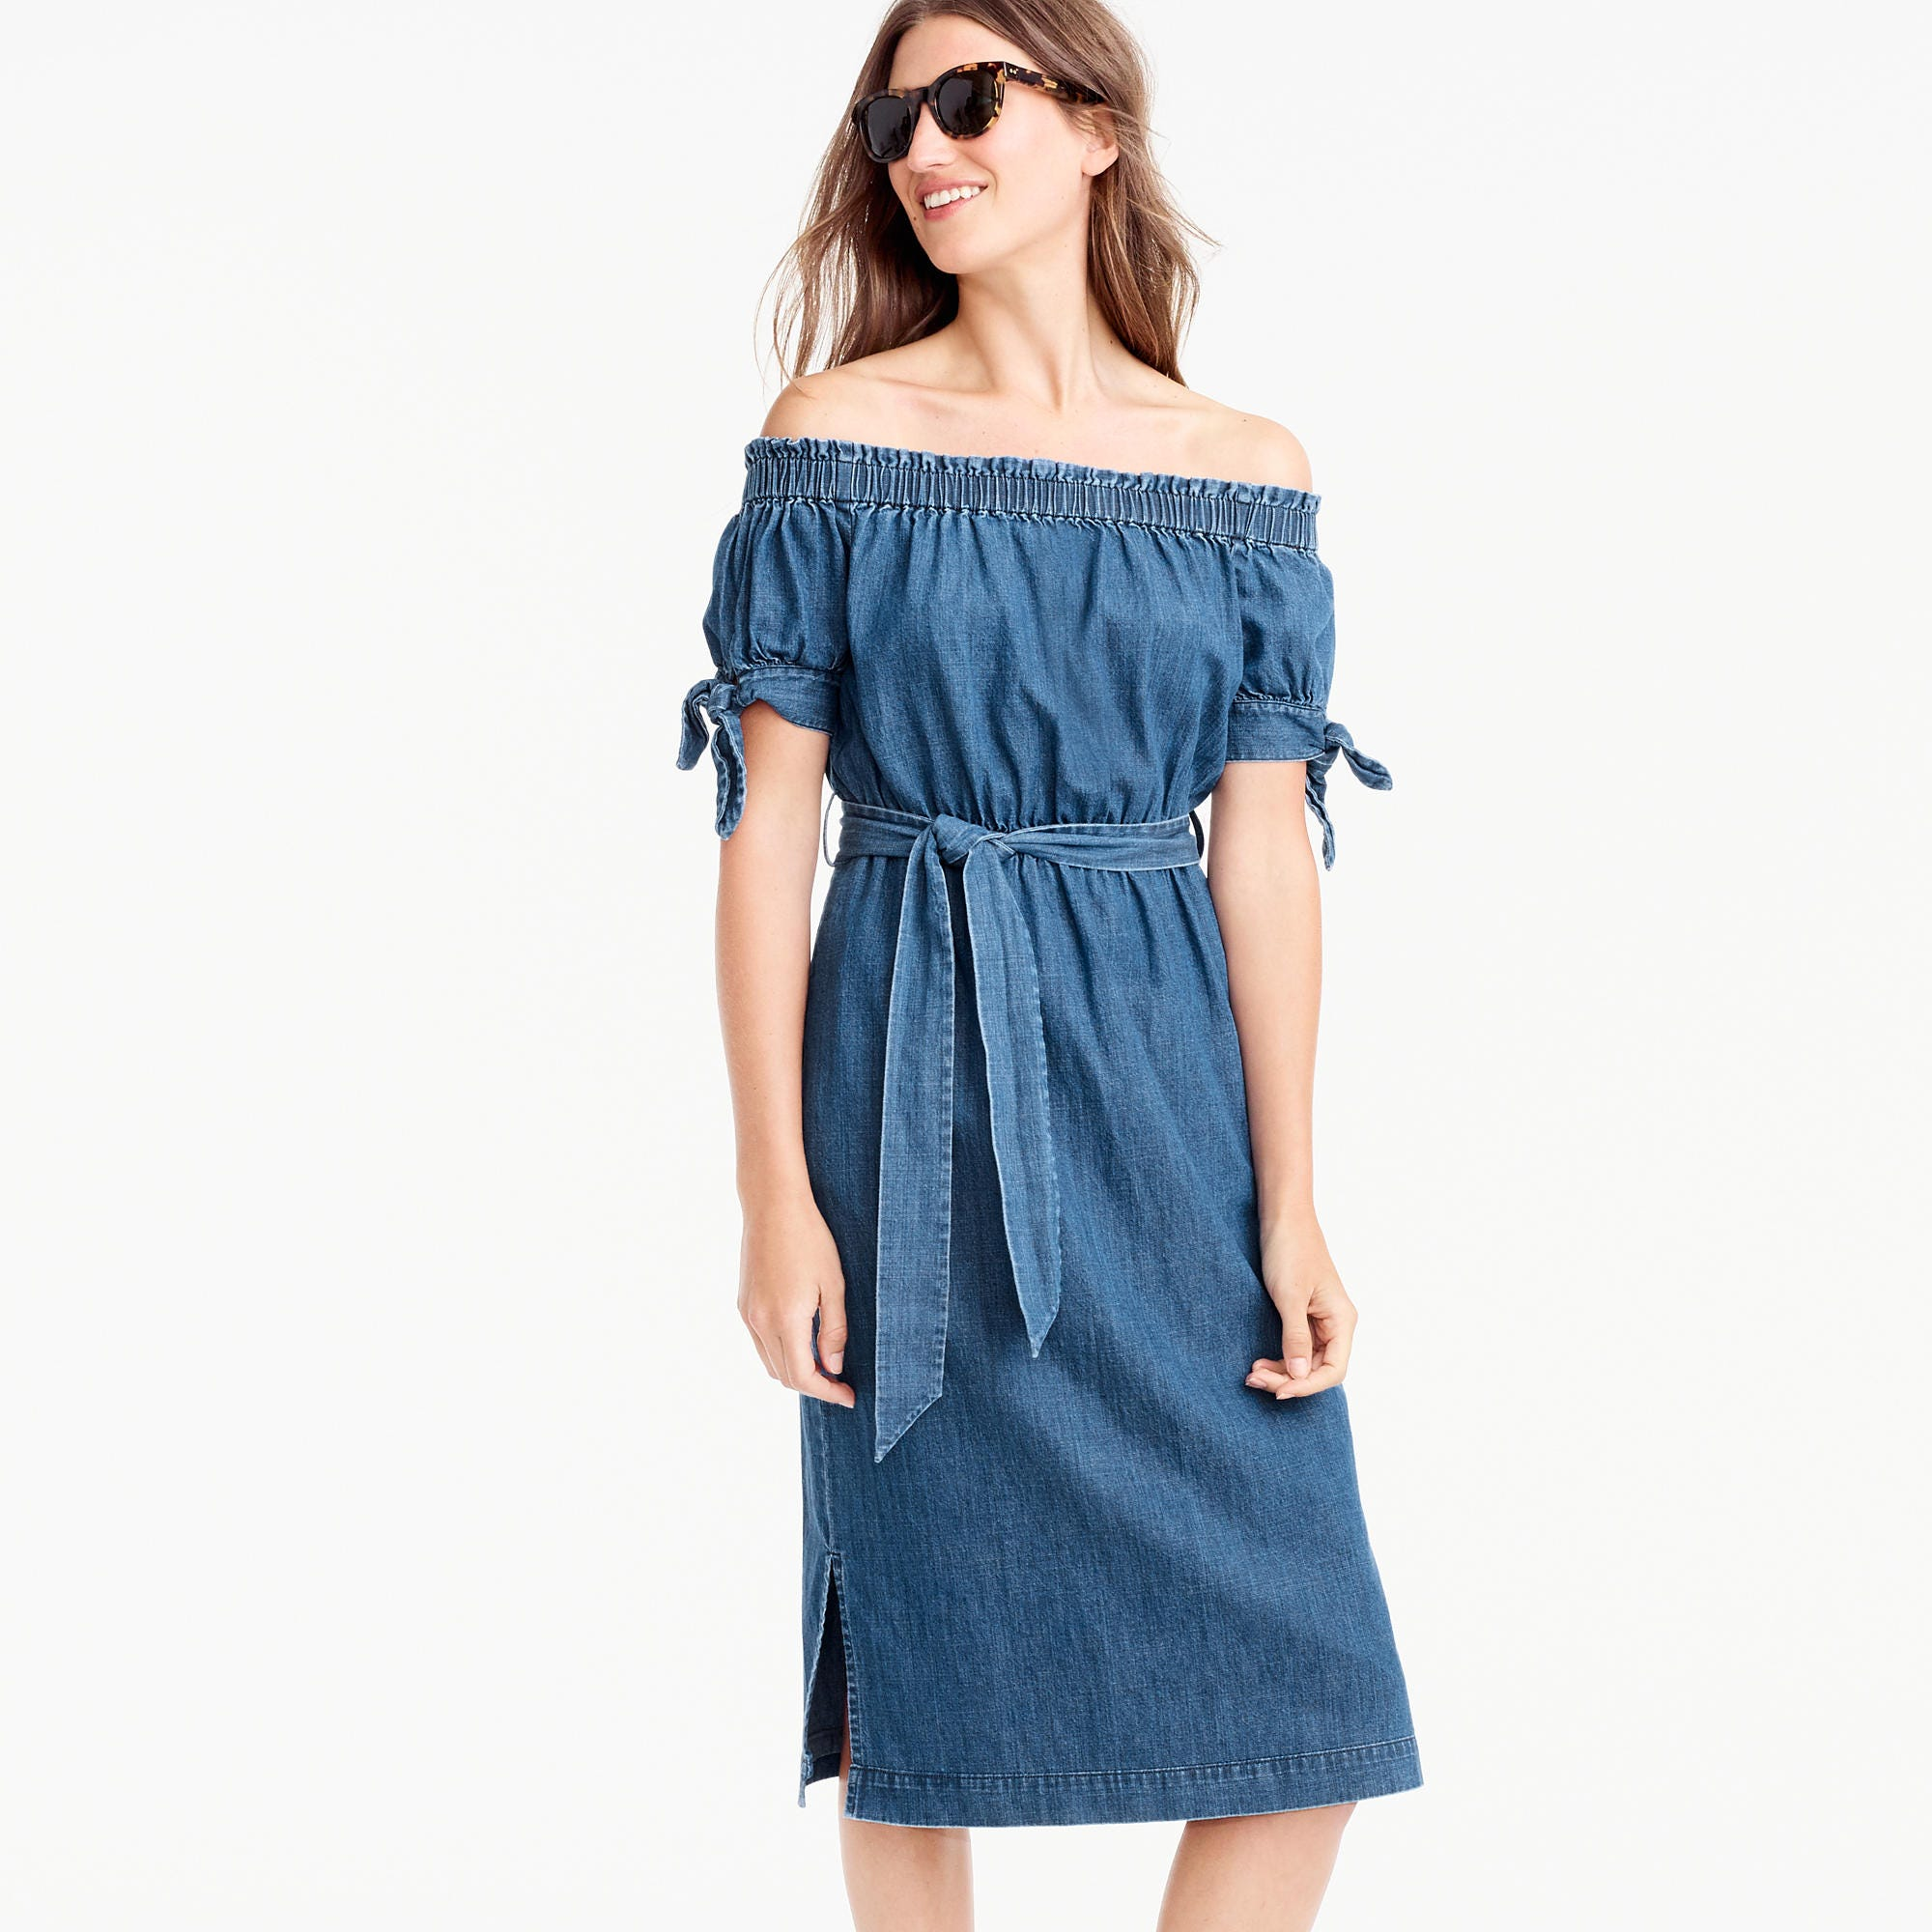 Popular ST LOUIS, Mo  Get Dressed Up And Save On Womens Dresses For Under $25! Right Now At Nordstrom Rack Online, Check Out Hundreds Of Stylish Dresses Some Are Up To 85 Percent Off Youll Find Designers Like Betsey Johnson, Free